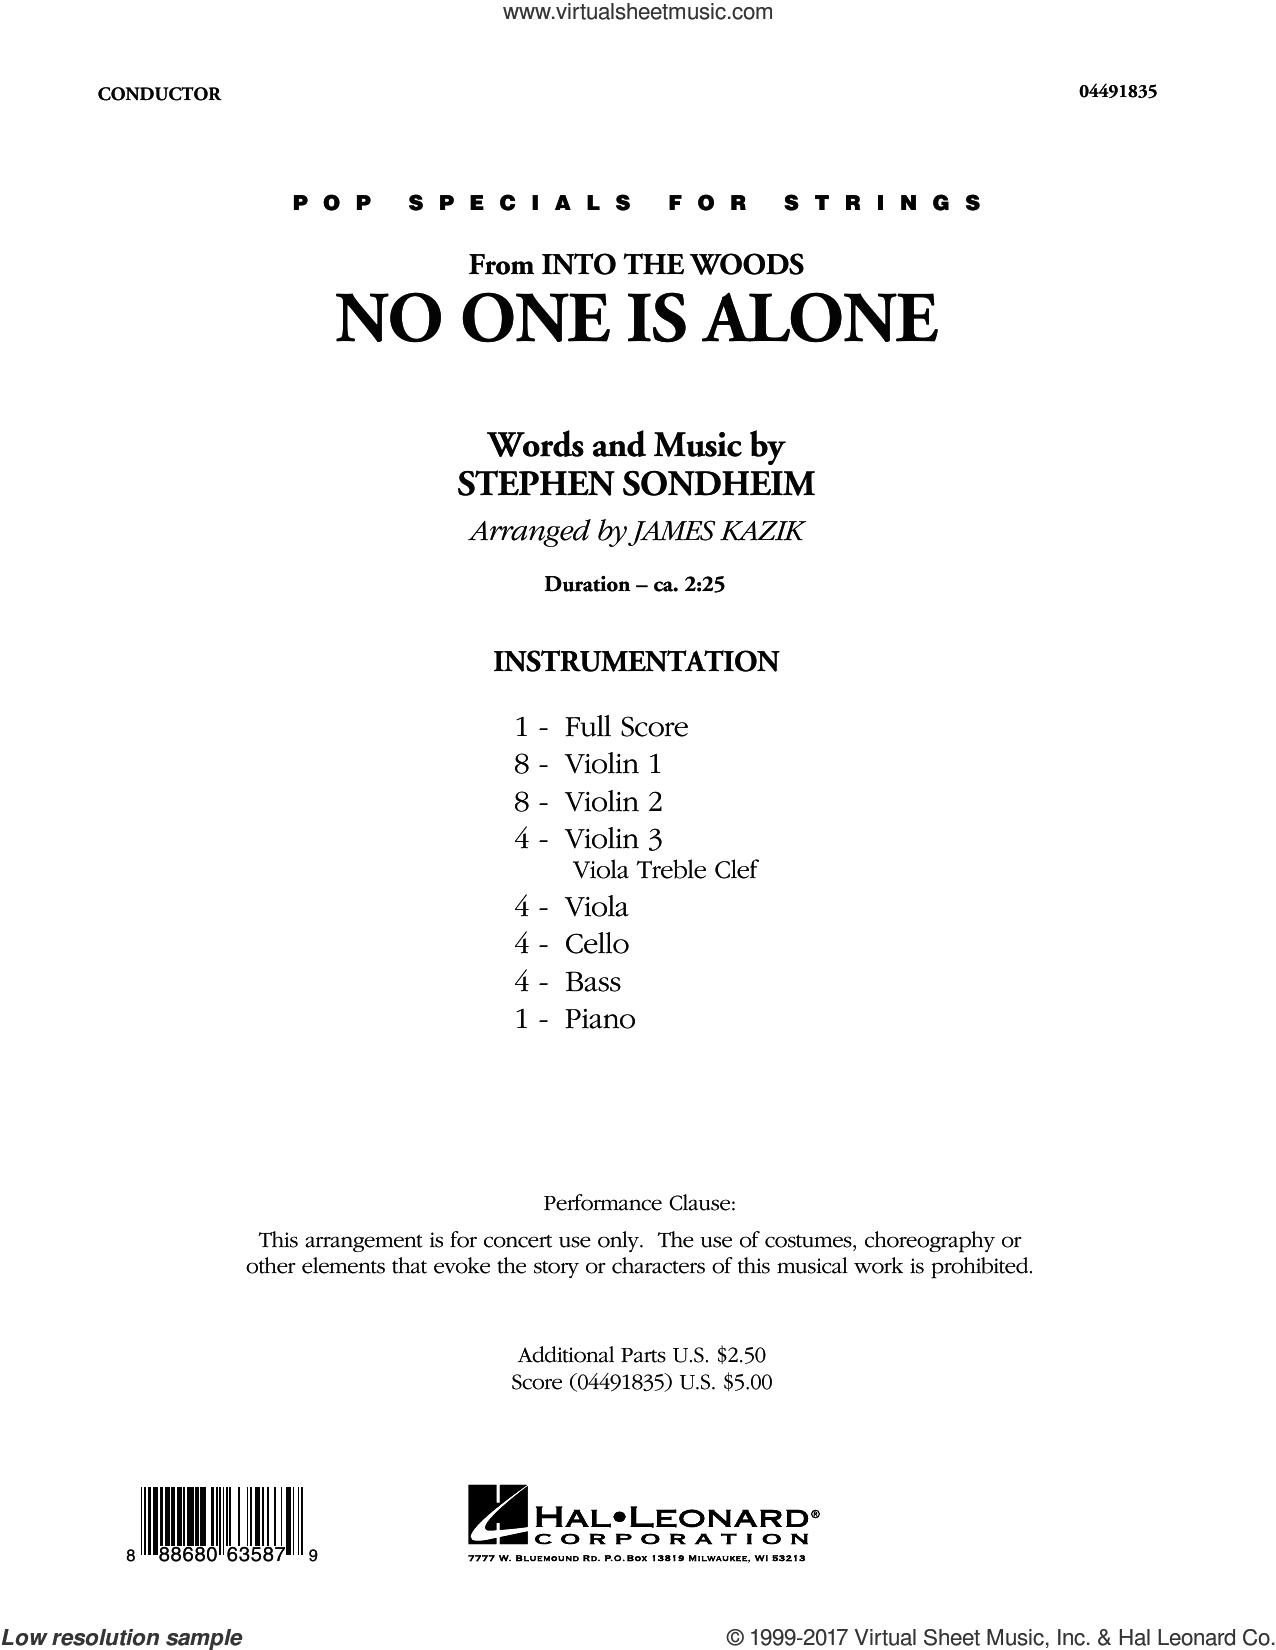 No One Is Alone (from Into The Woods) (COMPLETE) sheet music for orchestra by Stephen Sondheim and James Kazik, intermediate skill level